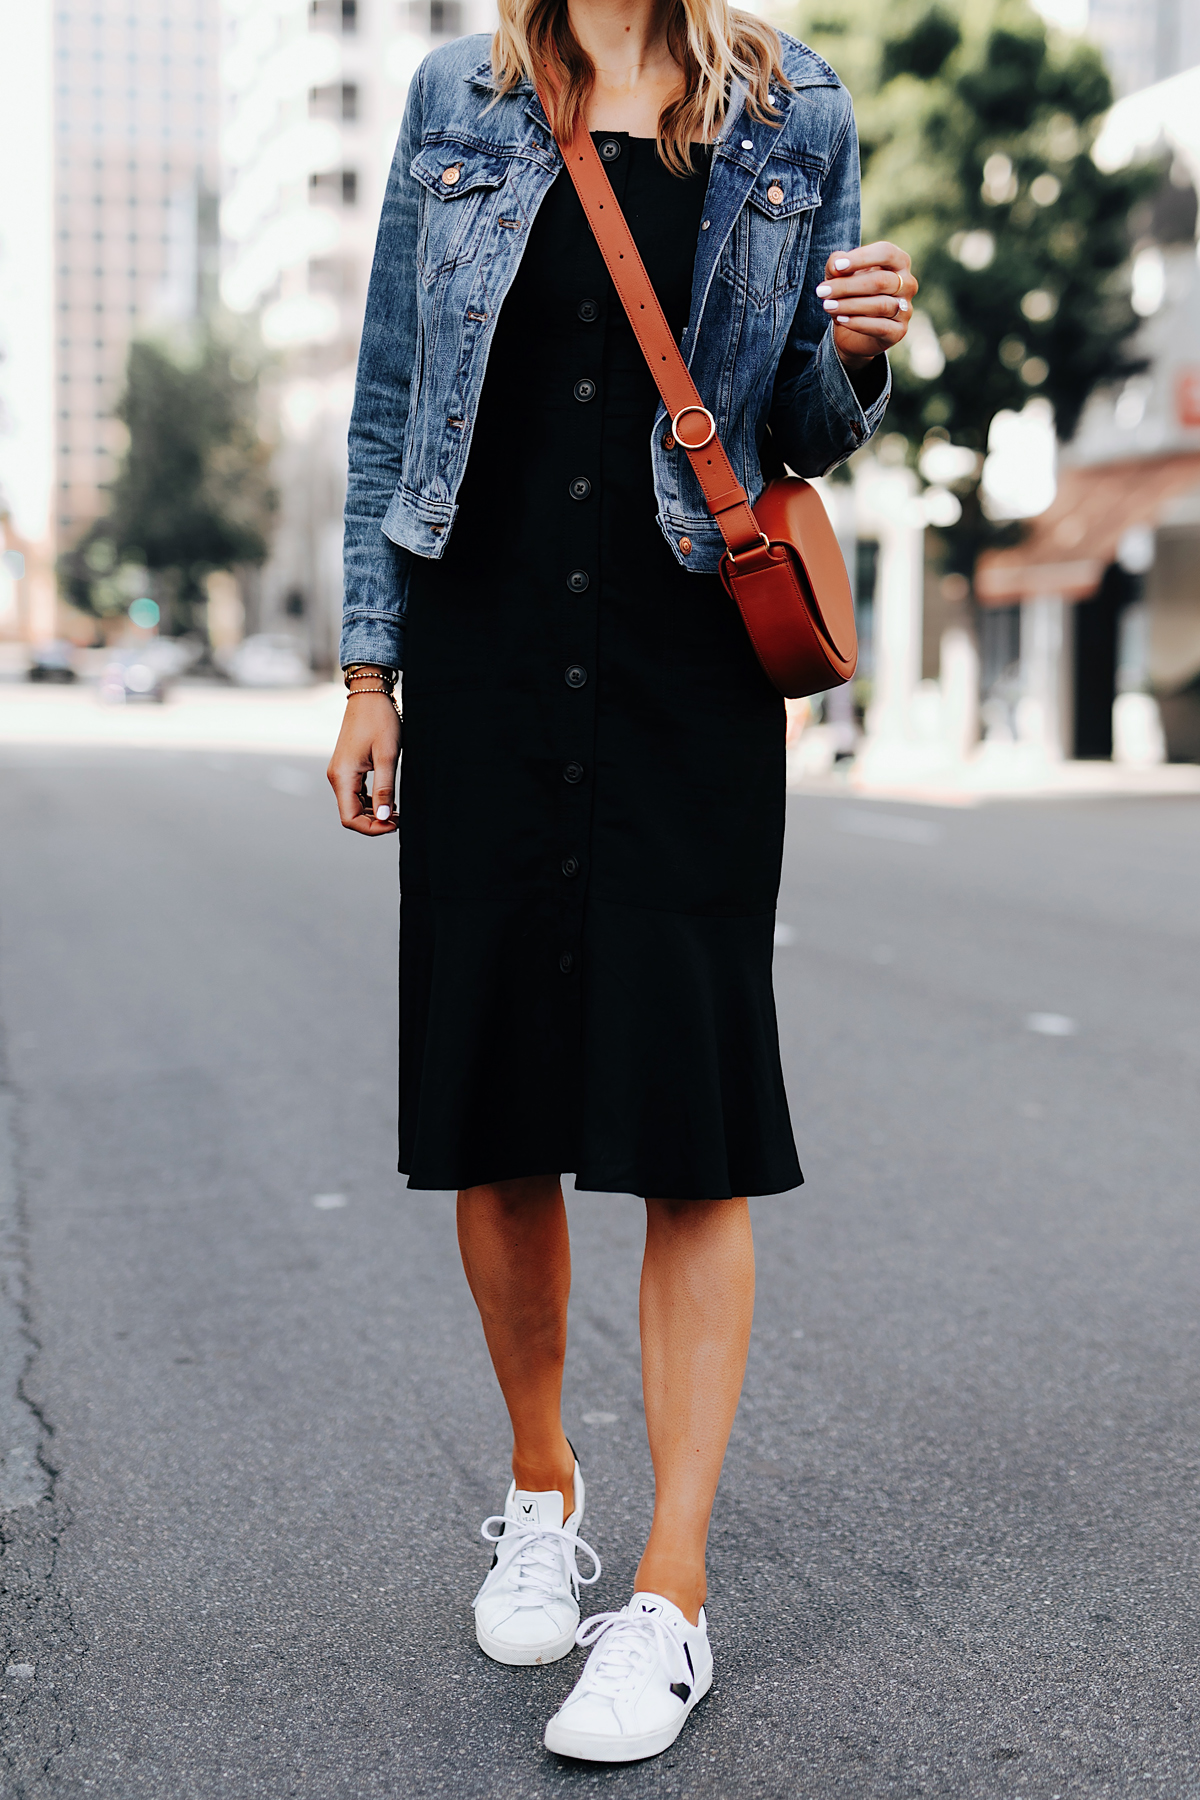 Fashion Jackson Wearing Banana Republic Black Button Front Dress Denim Jacket Tan Crossbody Handbag White Sneakers